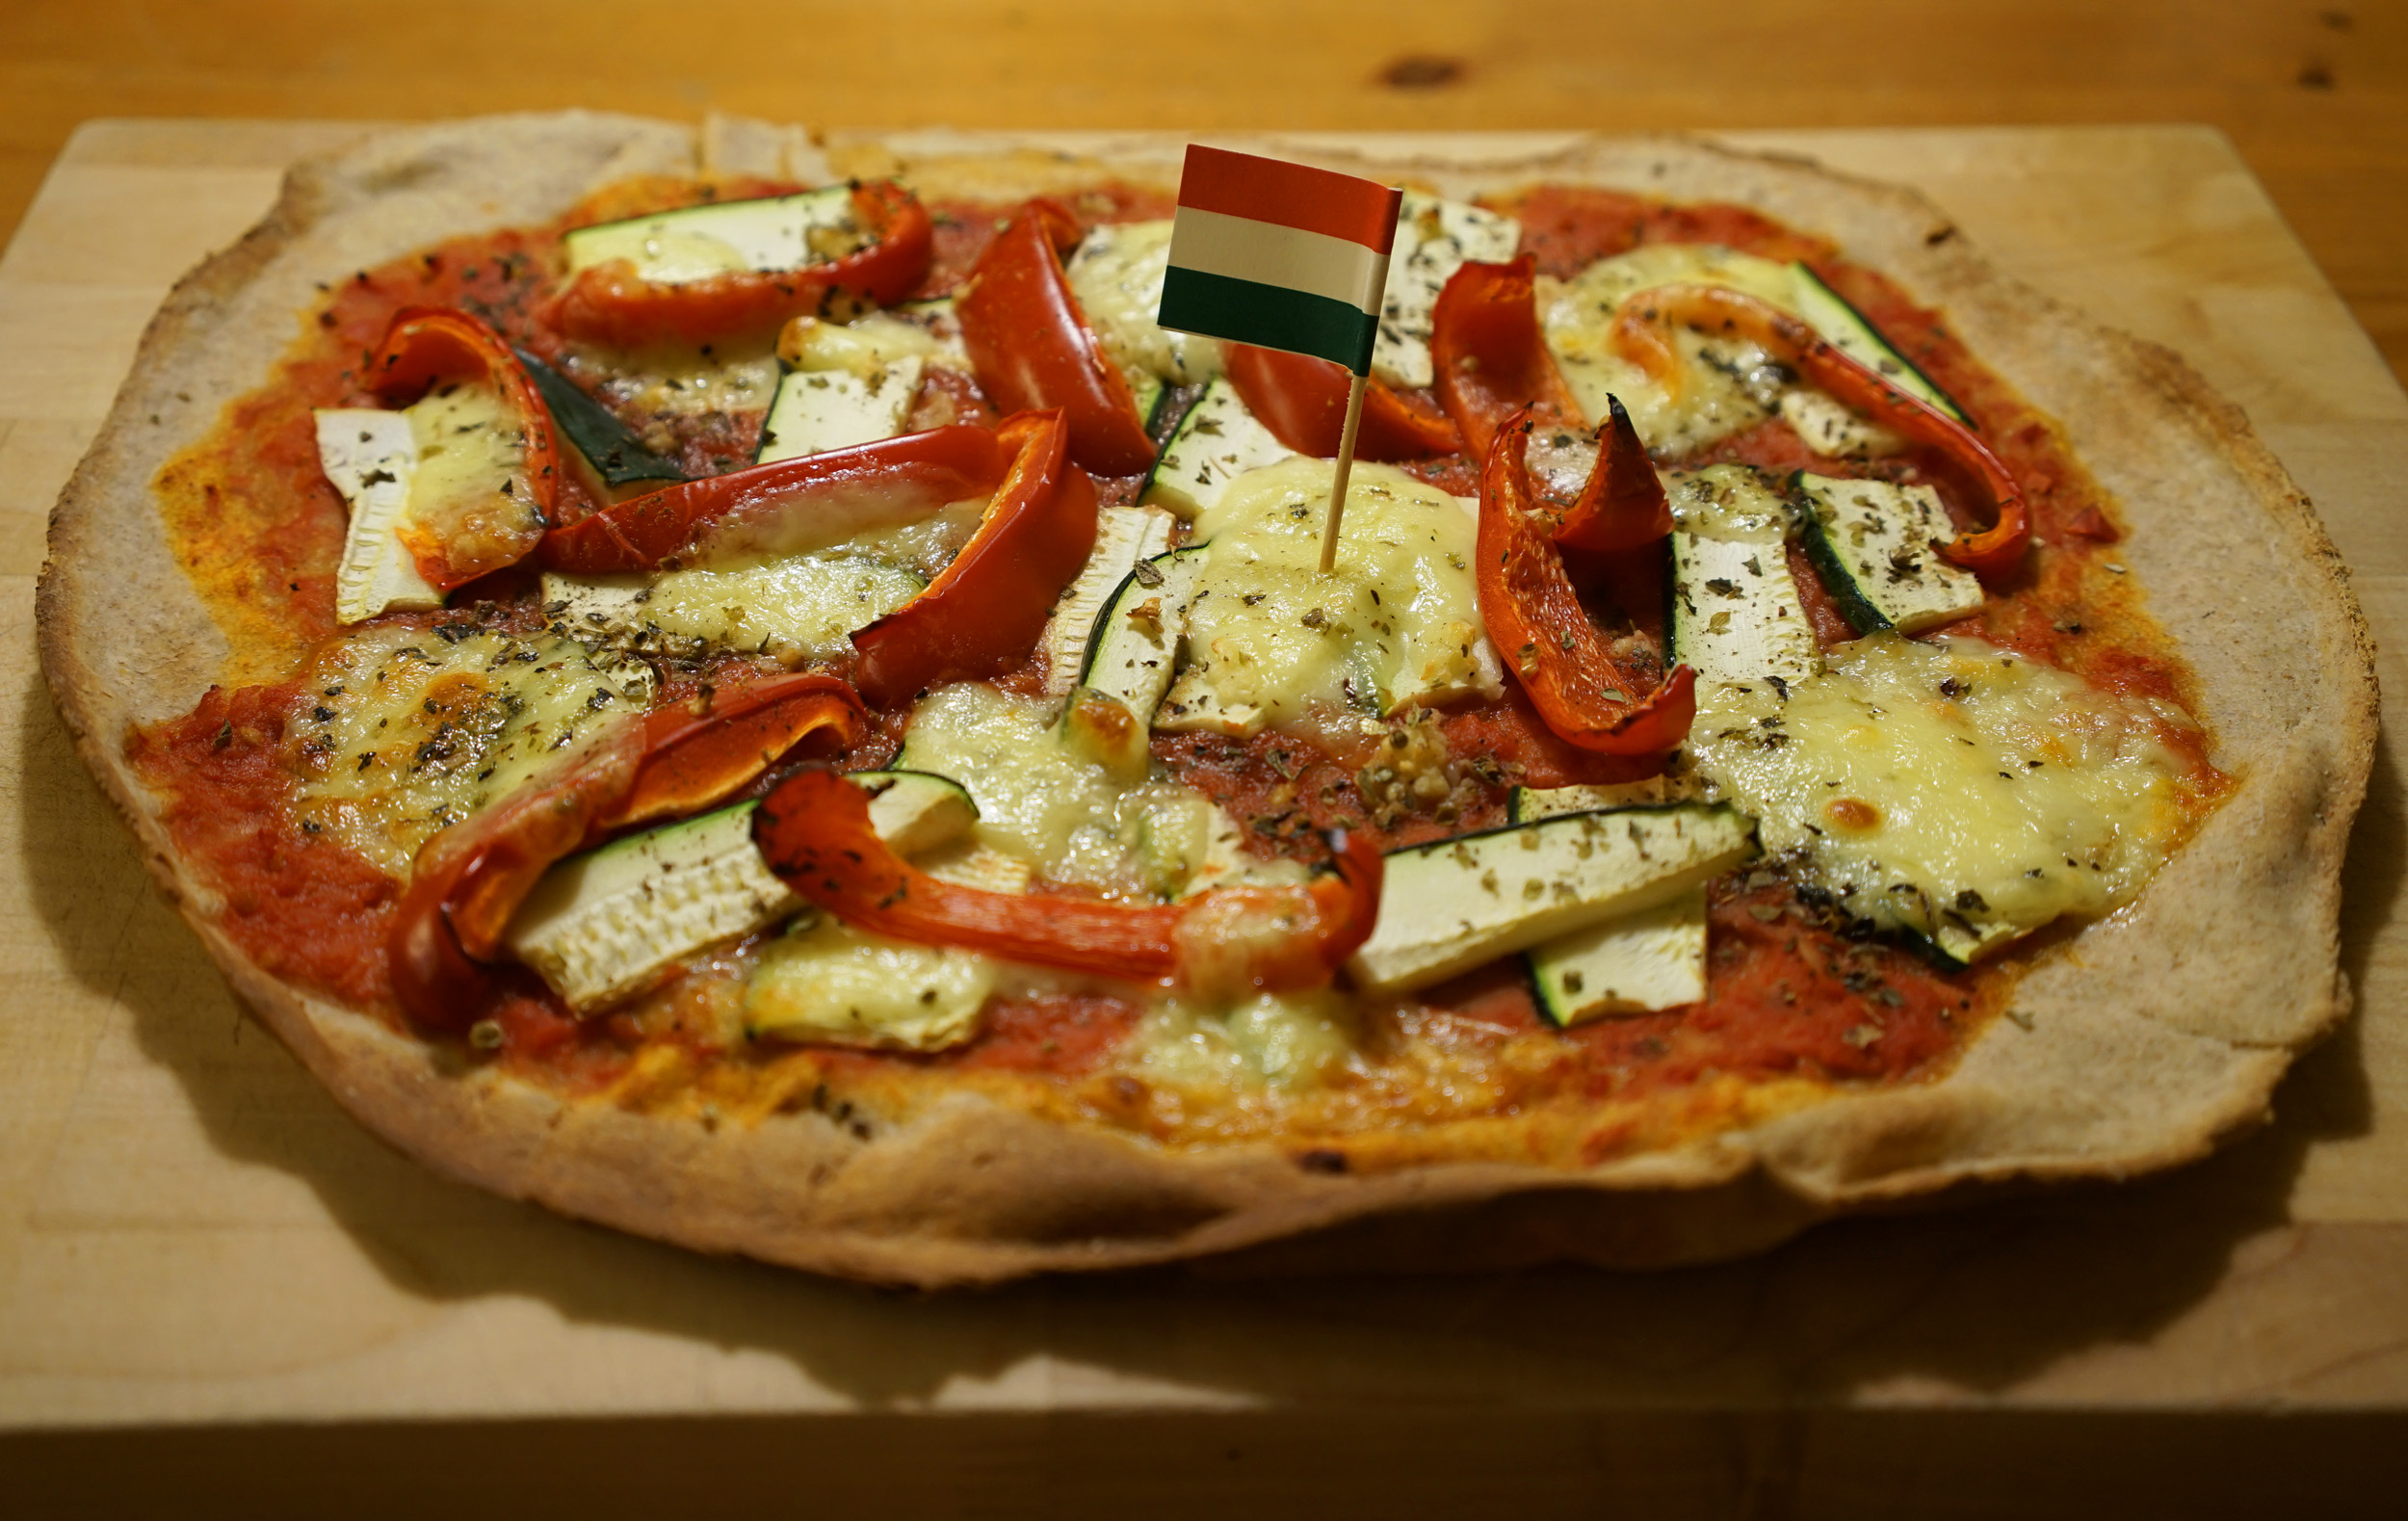 pizza baked on a stone with pepper and zucchini length-wise slices, mozzarella cheese, tomato sauce and an Italian flag toothpick in the center.